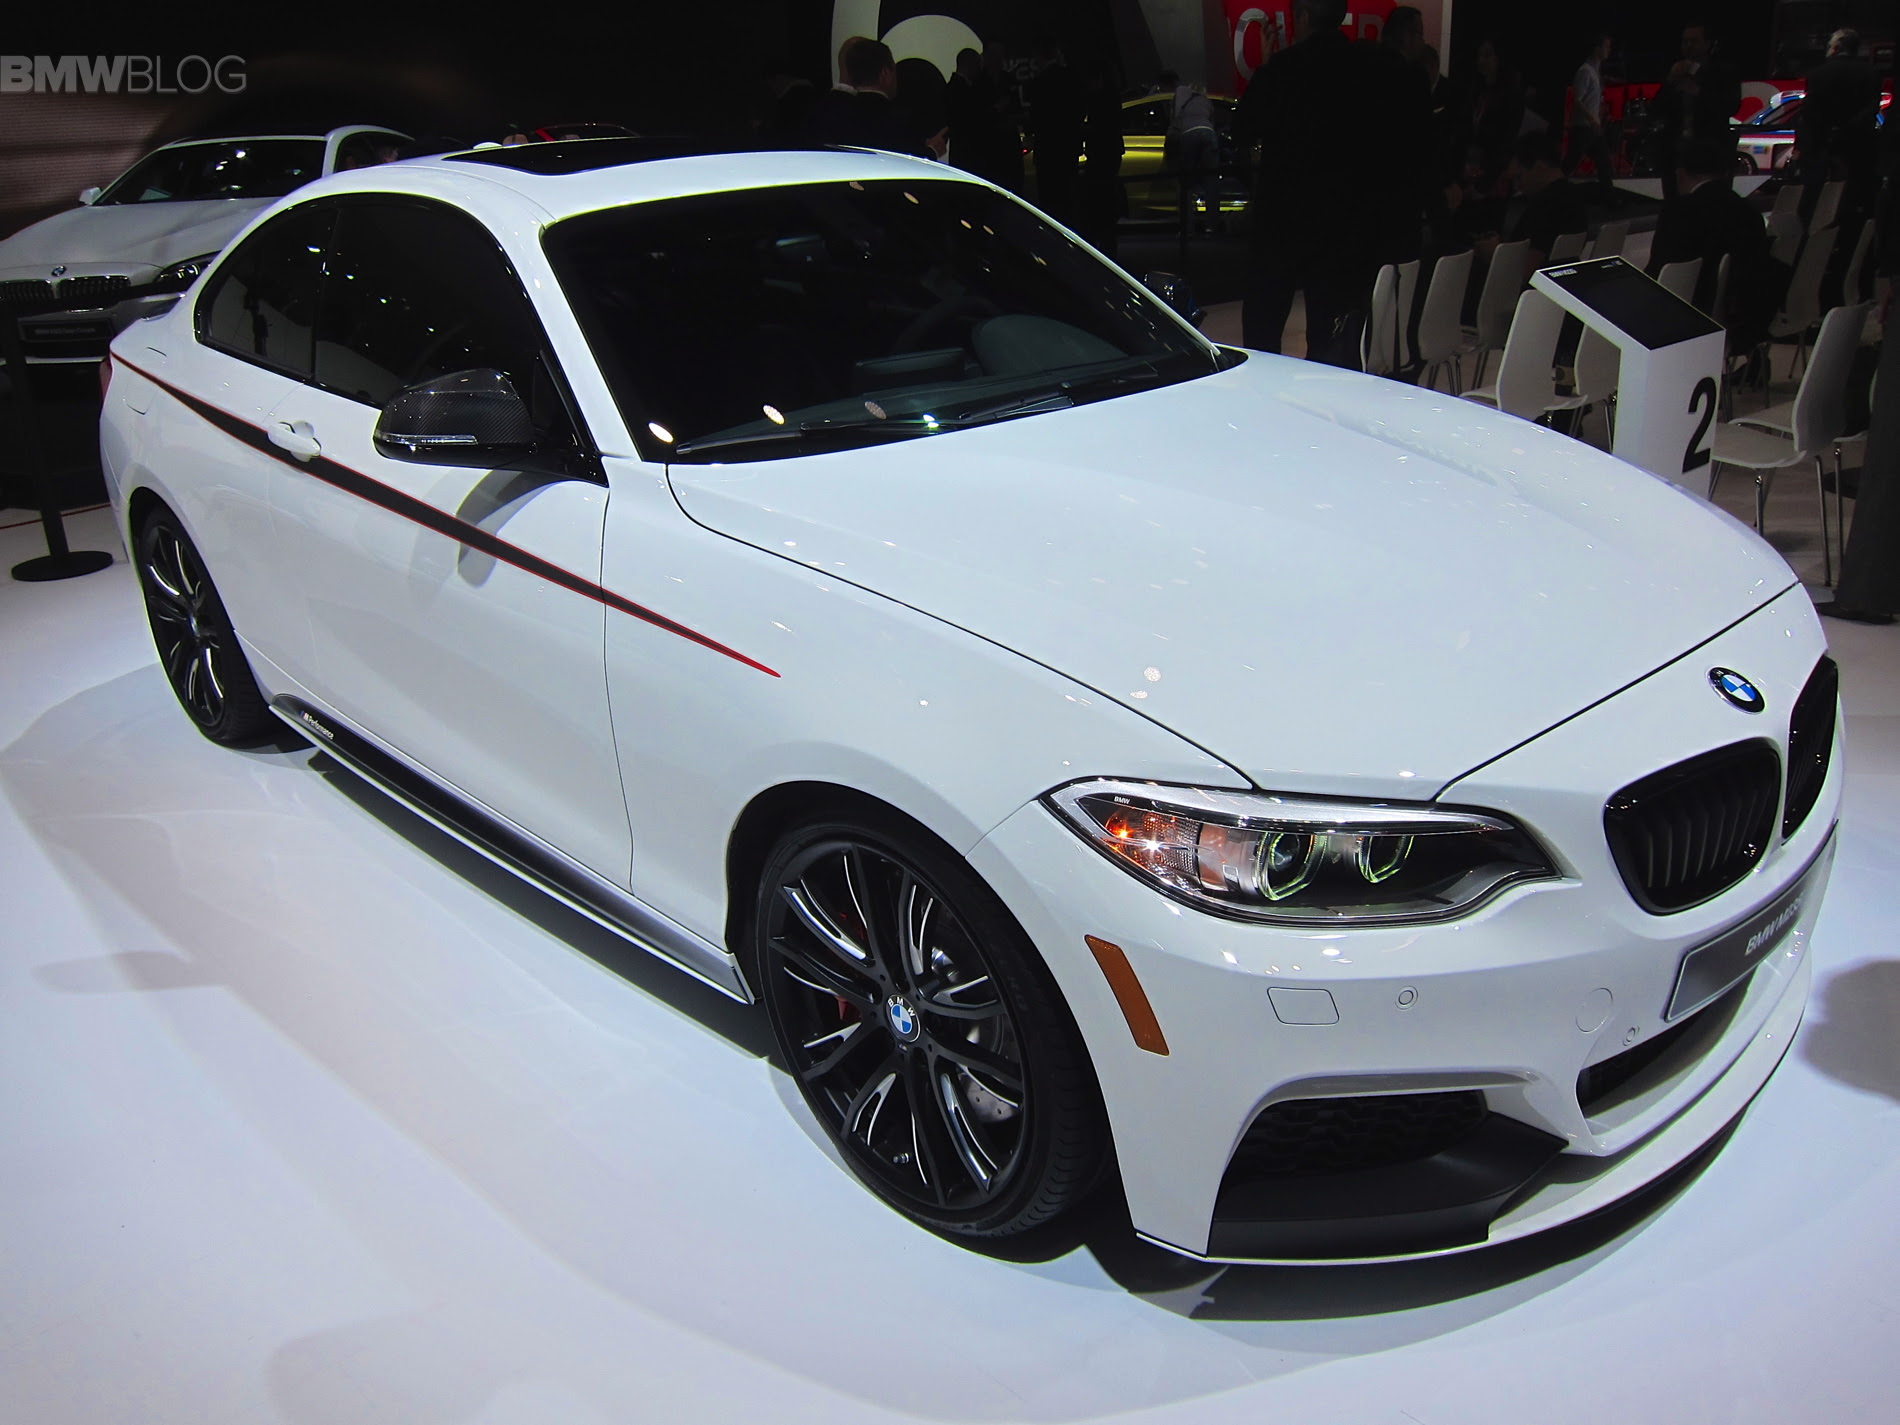 BMW M235I M PERFORMANCE PARTS UK  Wroc?awski Informator Internetowy  Wroc?aw, Wroclaw, hotele